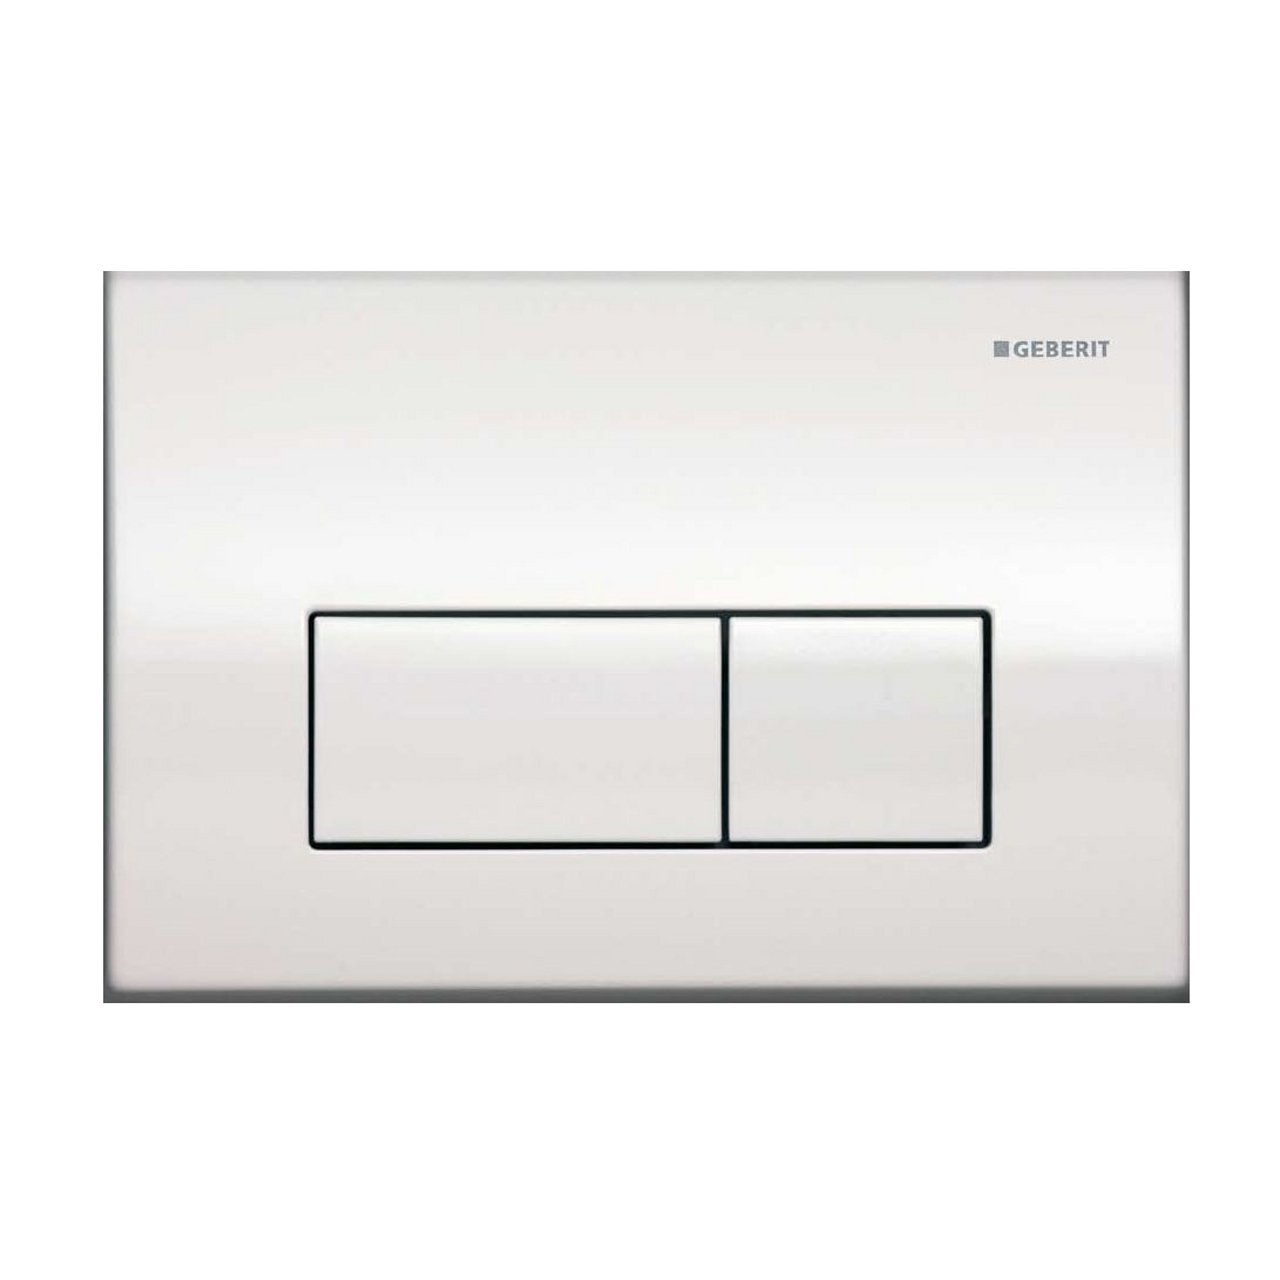 Geberit 115.260.21.1 Kappa50 Dual-Flush Actuator, Polished Chrome ...